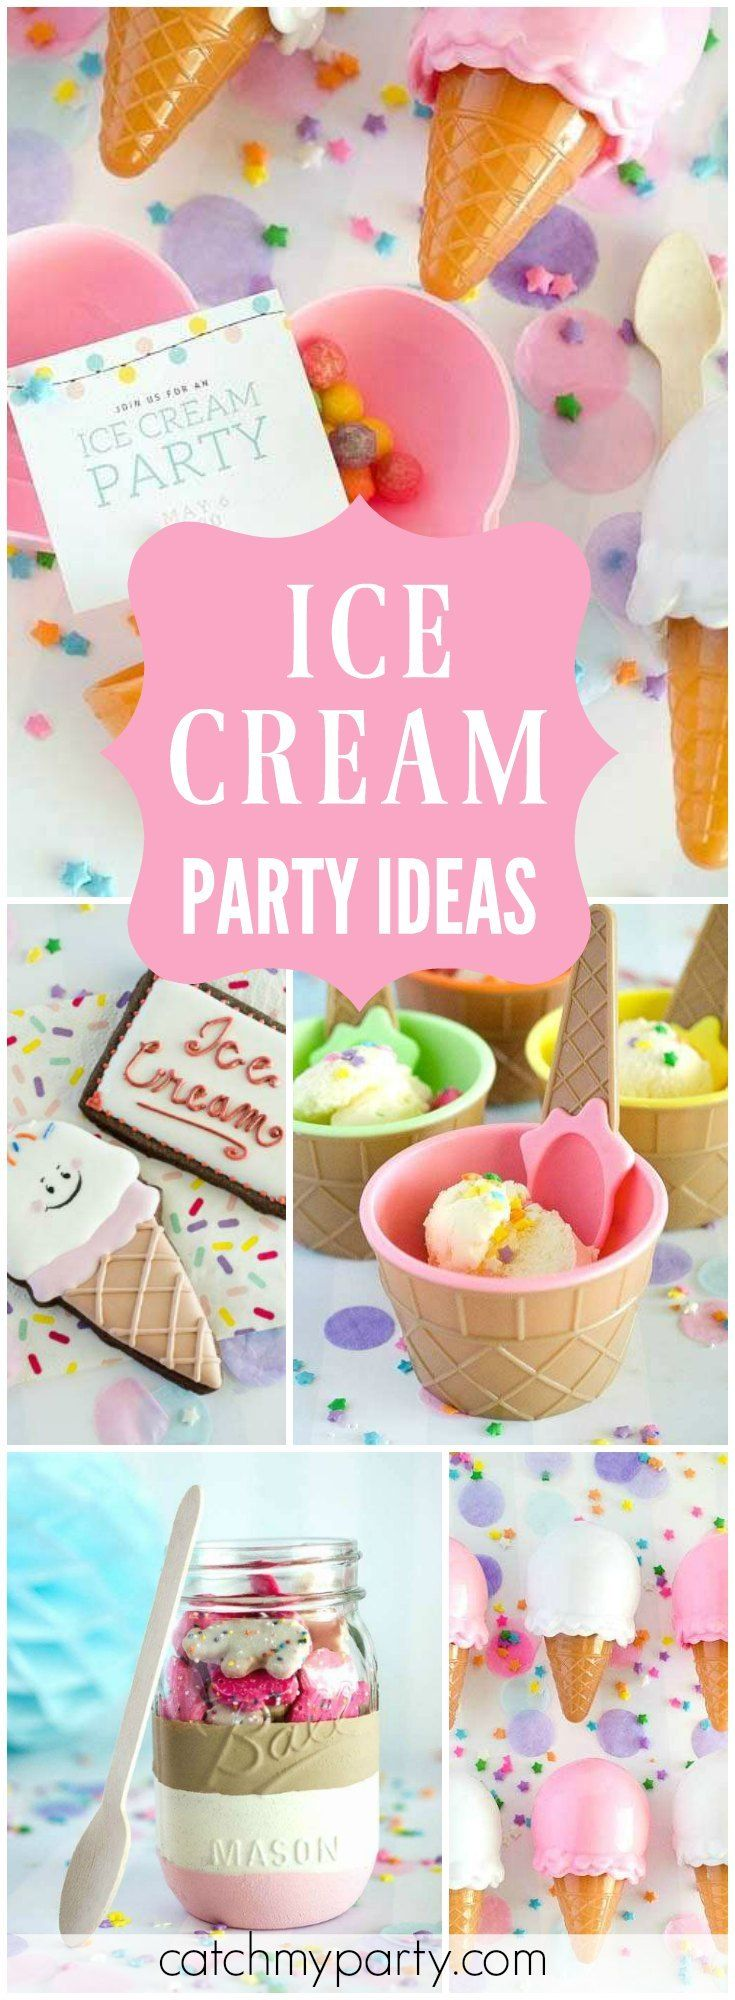 You have to see the terrific treats at this ice cream bash! See more party ideas at Catchmyparty.com!